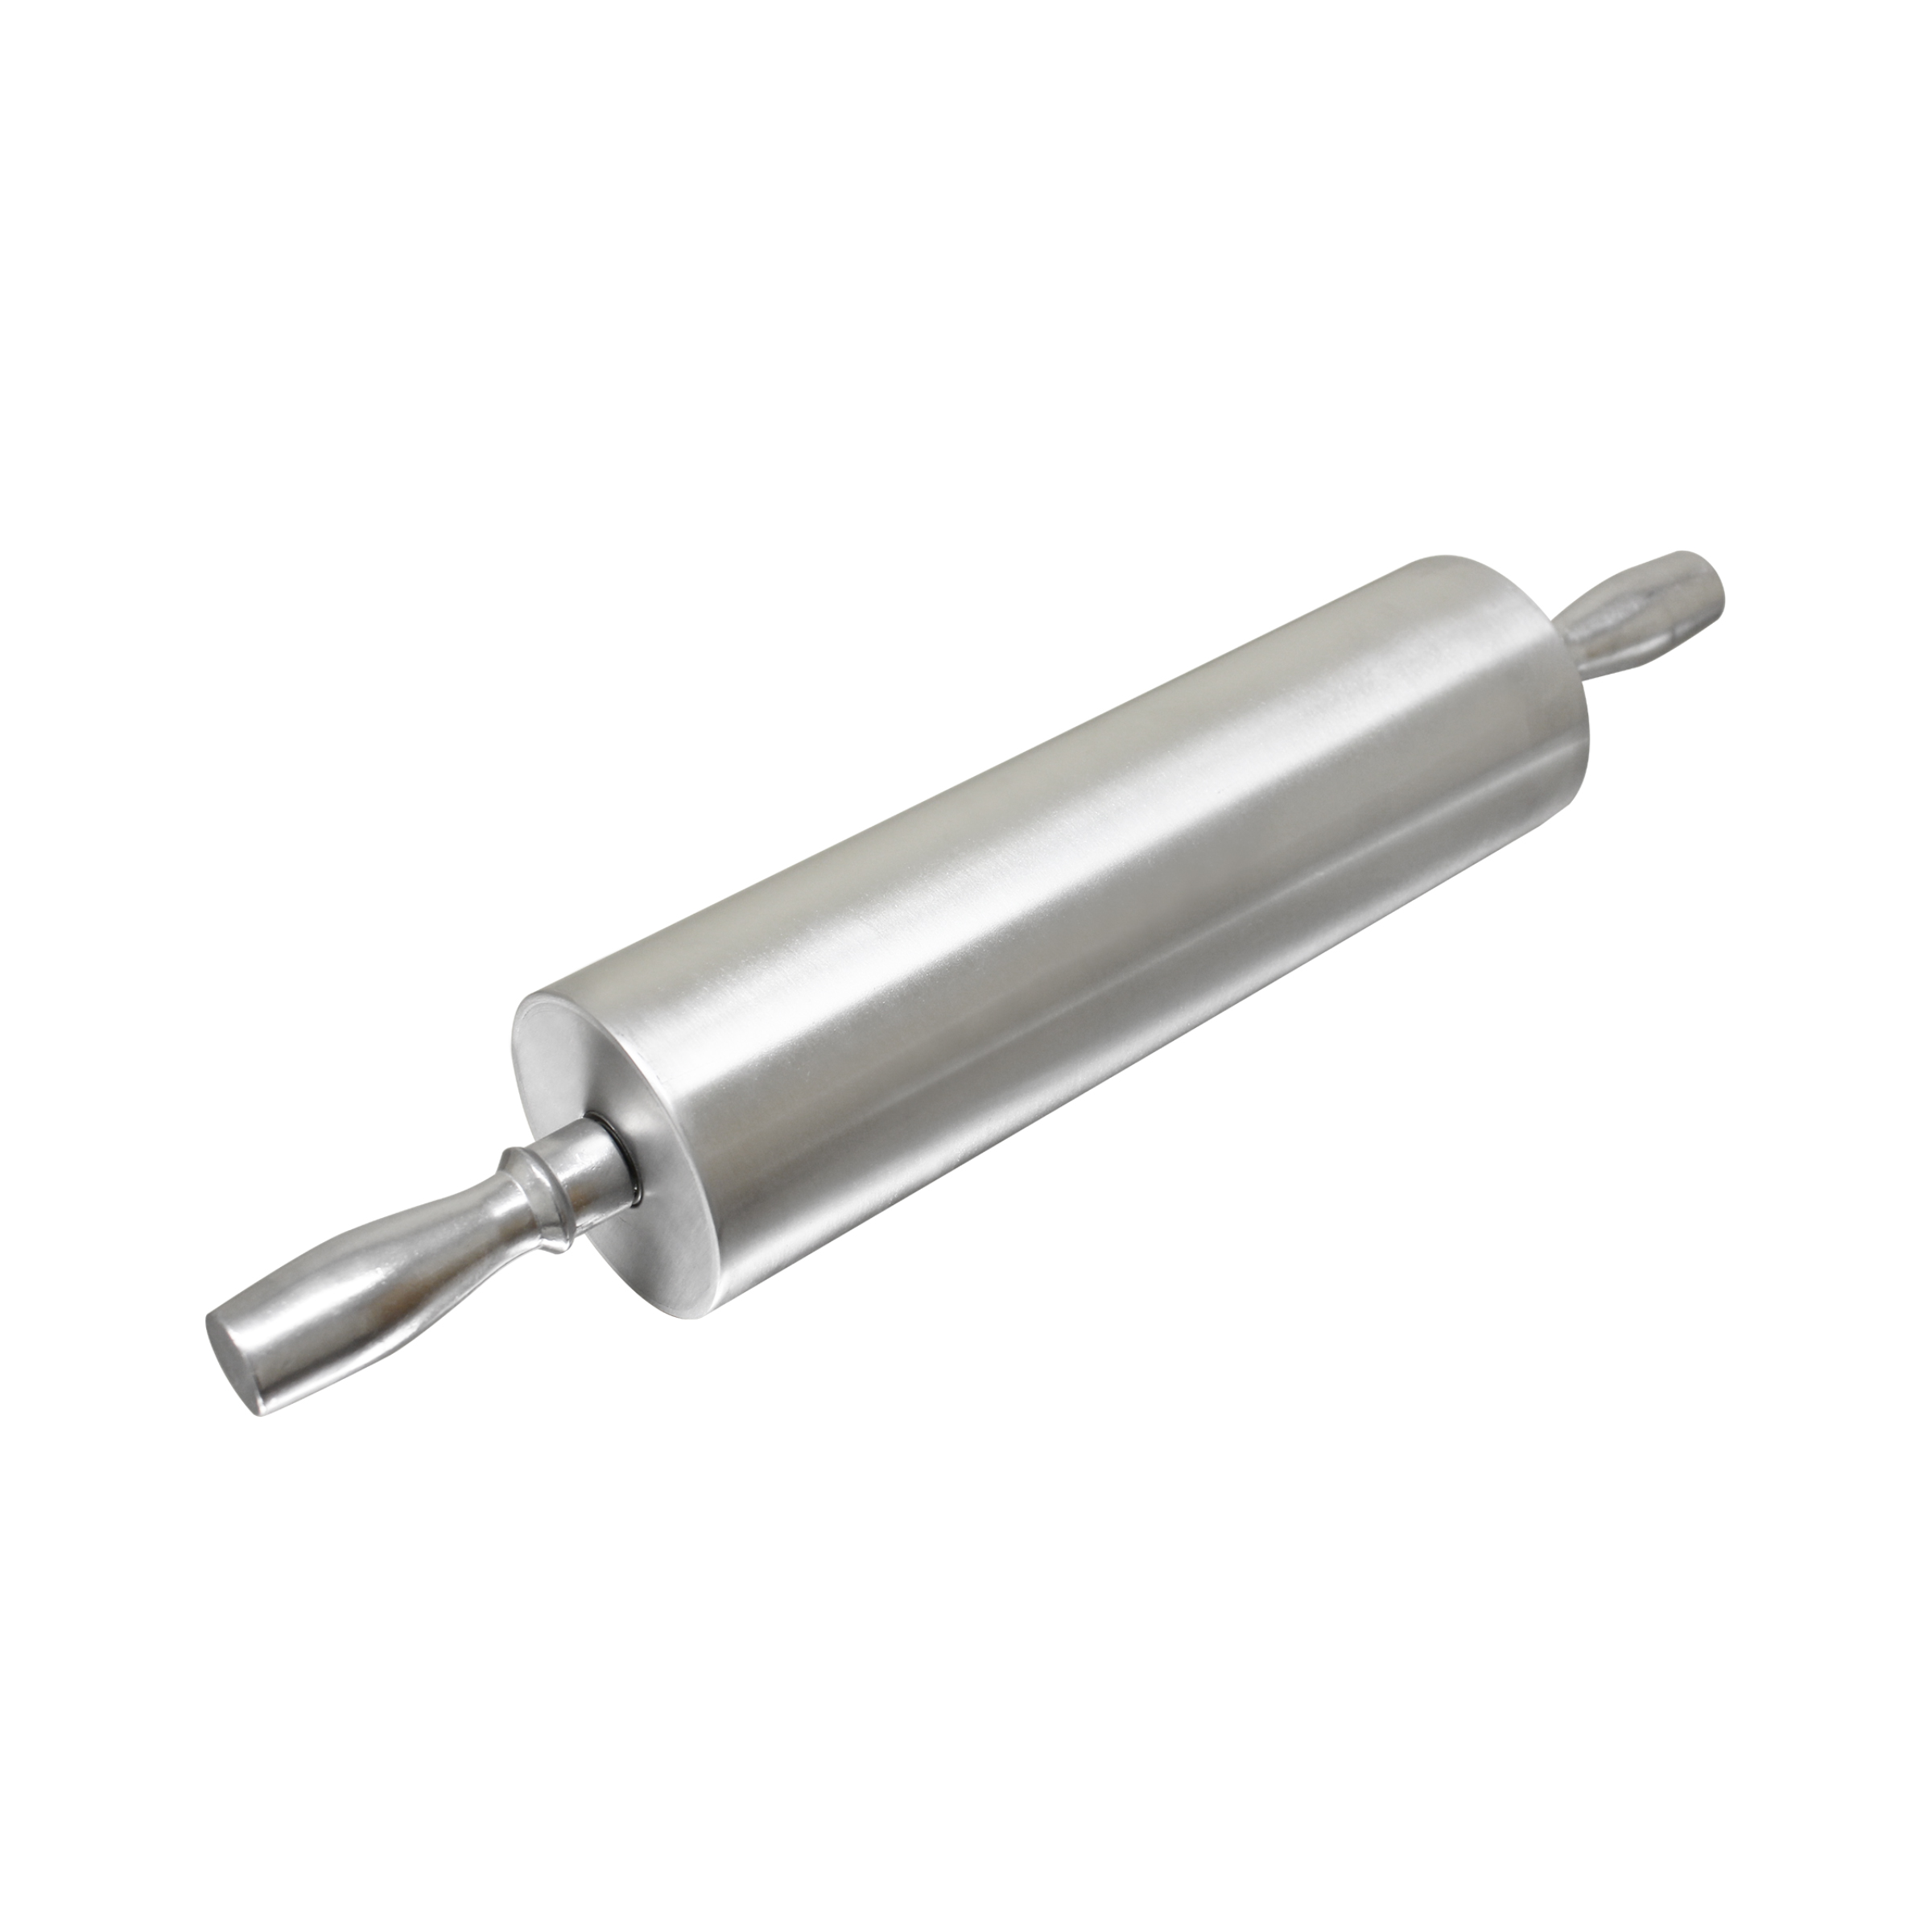 Aluminum Rolling Pin 18 Inch, Comes In Each by Thunder Group